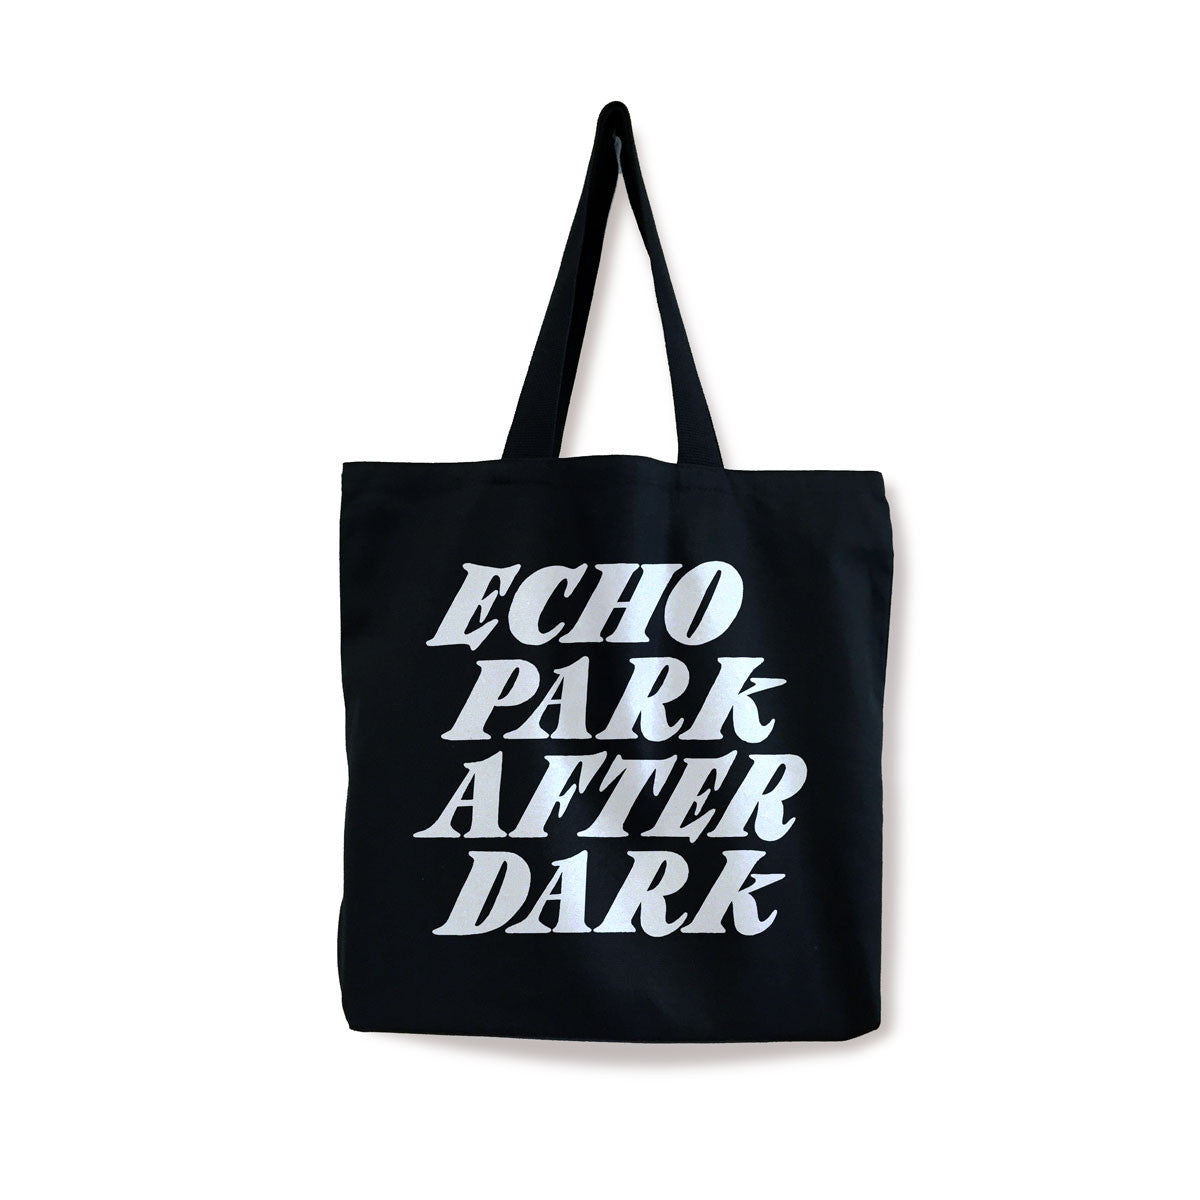 """Echo Park After Dark"" Bag"